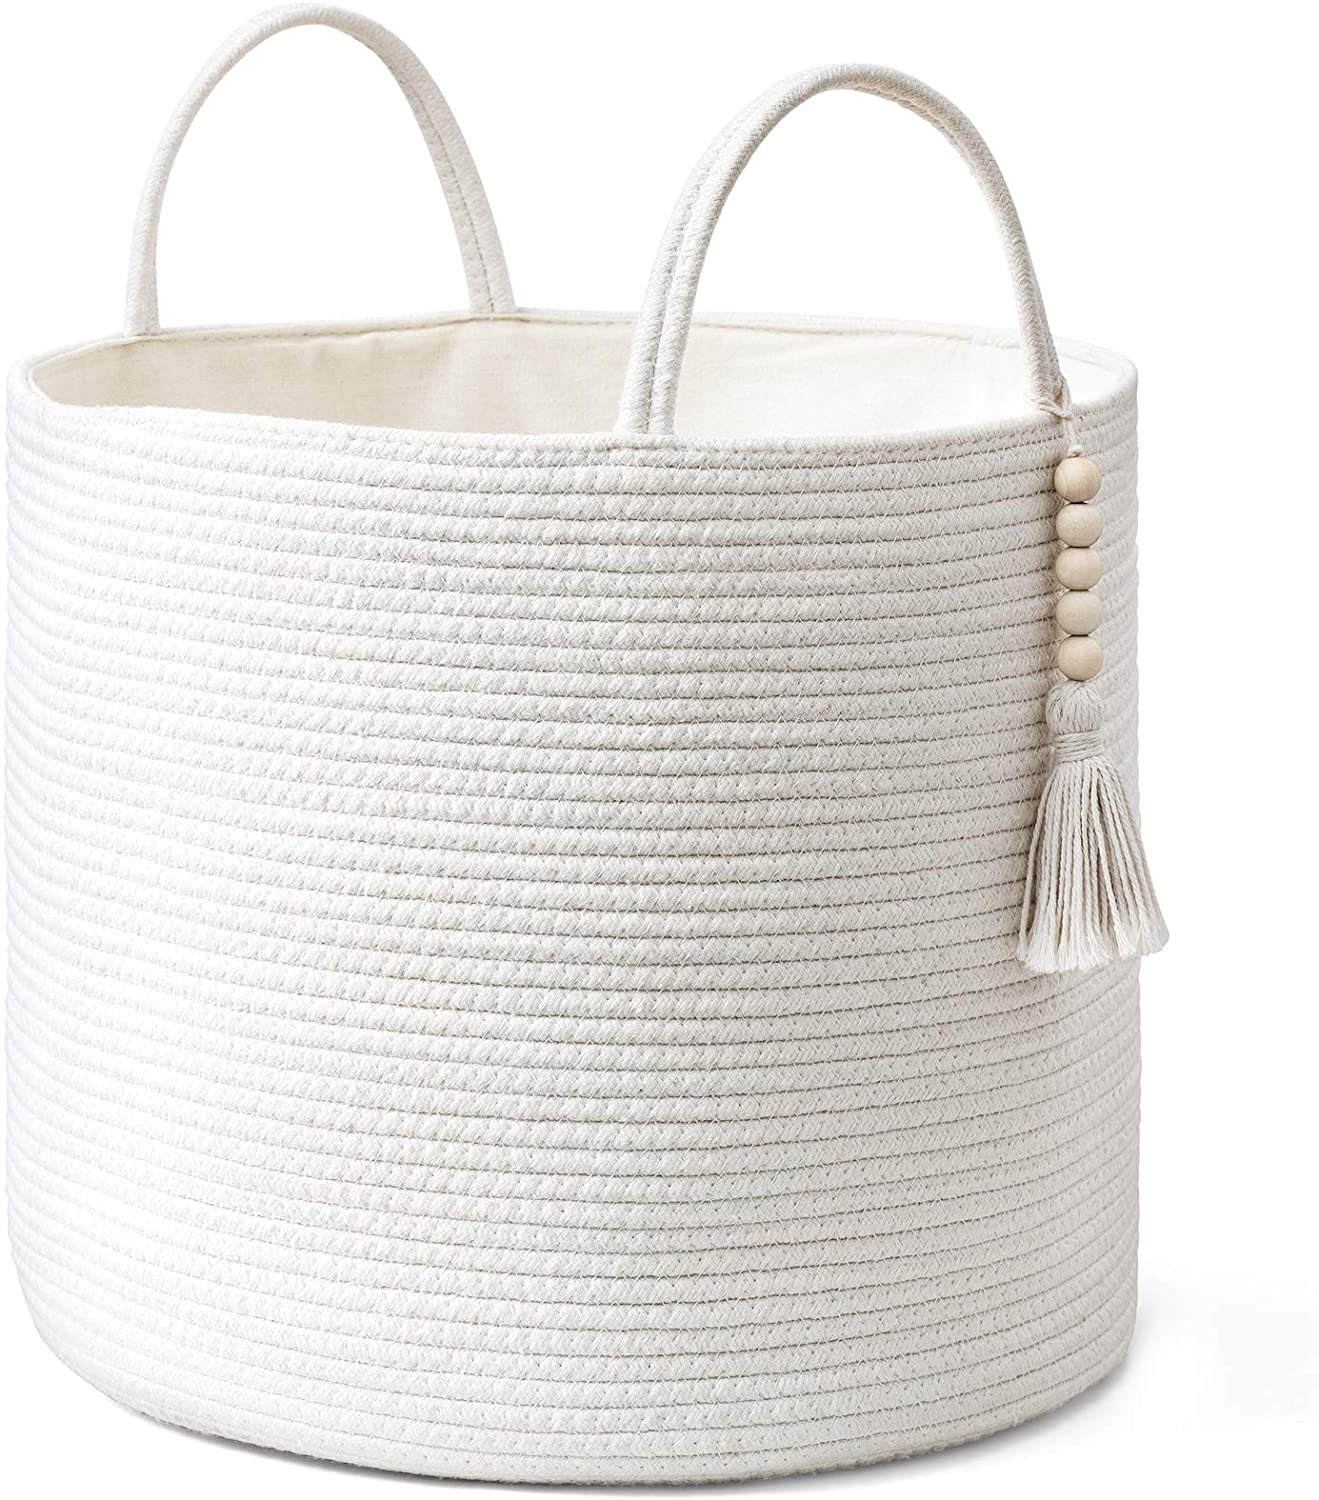 Mkono Woven Storage Basket Decorative Natural Rope Basket Wooden Bead Decoration for Blankets,Toys,Clothes,Shoes,Plant Organizer Bin with Handles Living Room Home Decor, White, 16